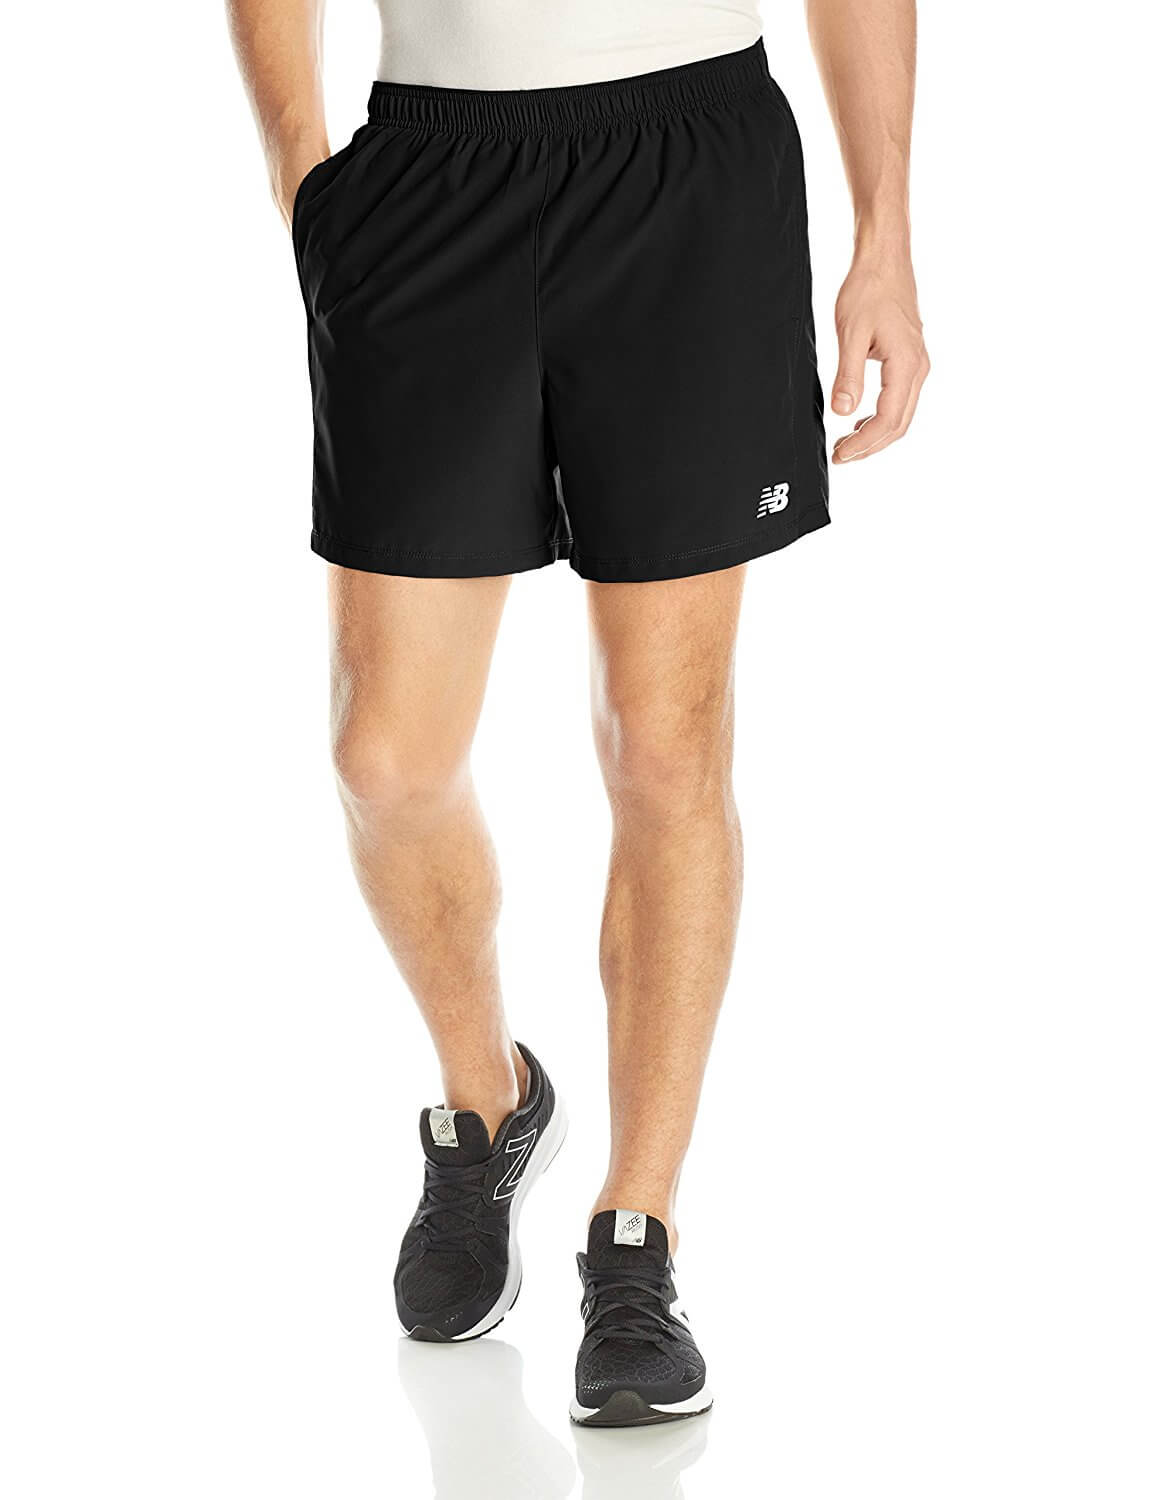 b91d3521 Best New Balance Running Shorts Tested & Reviewed | RunnerClick